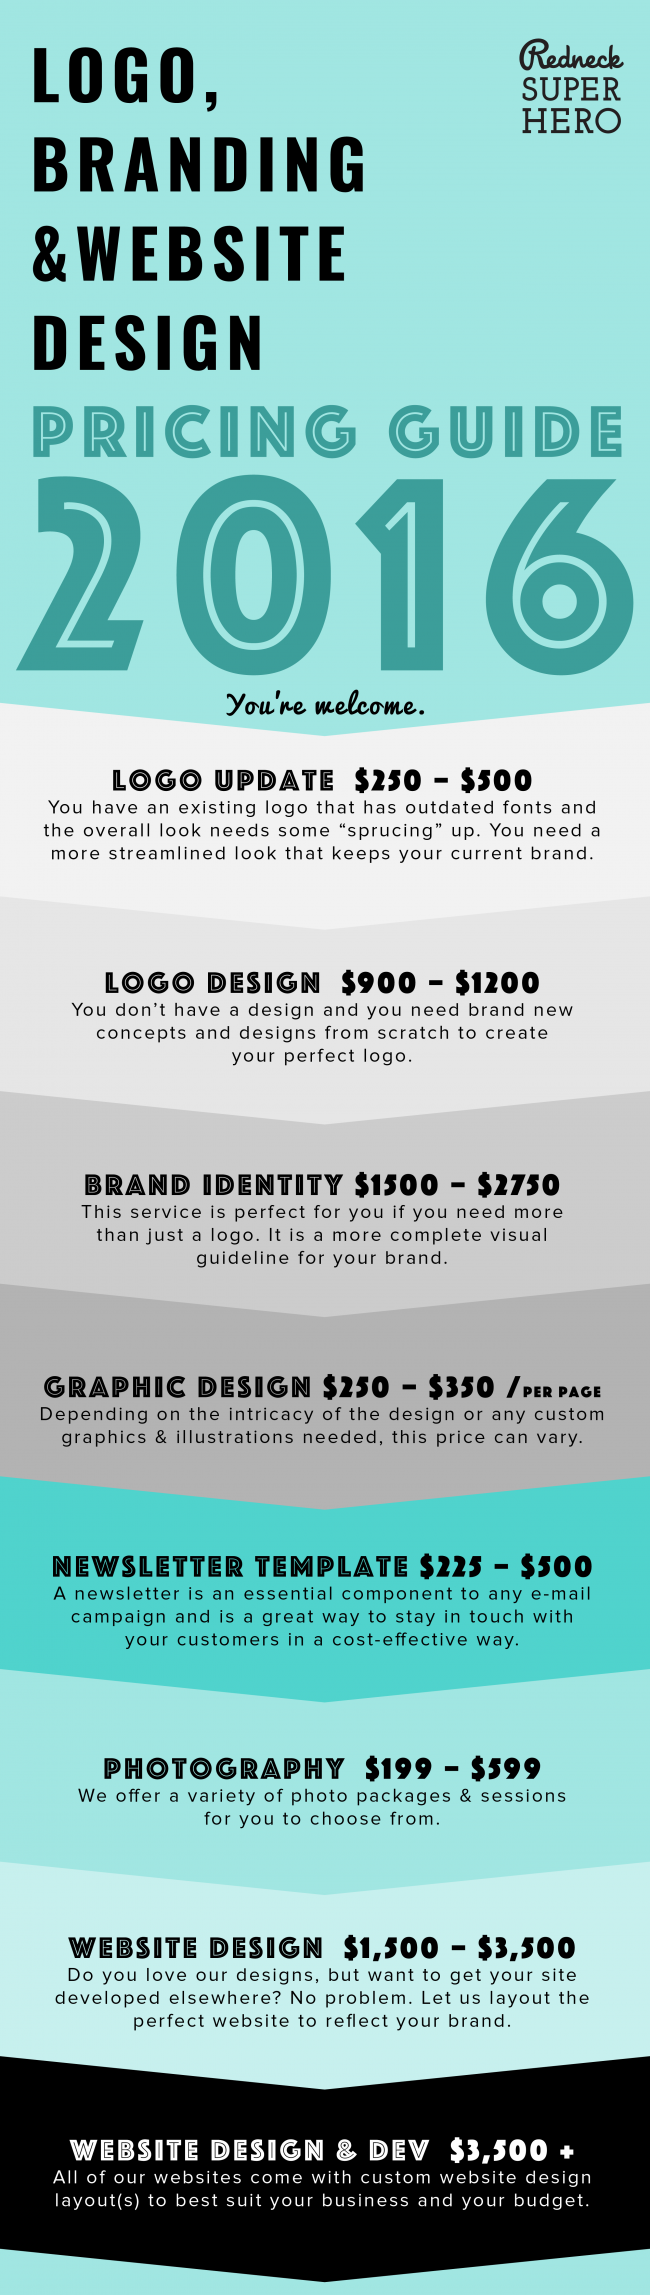 Pricing Infographic